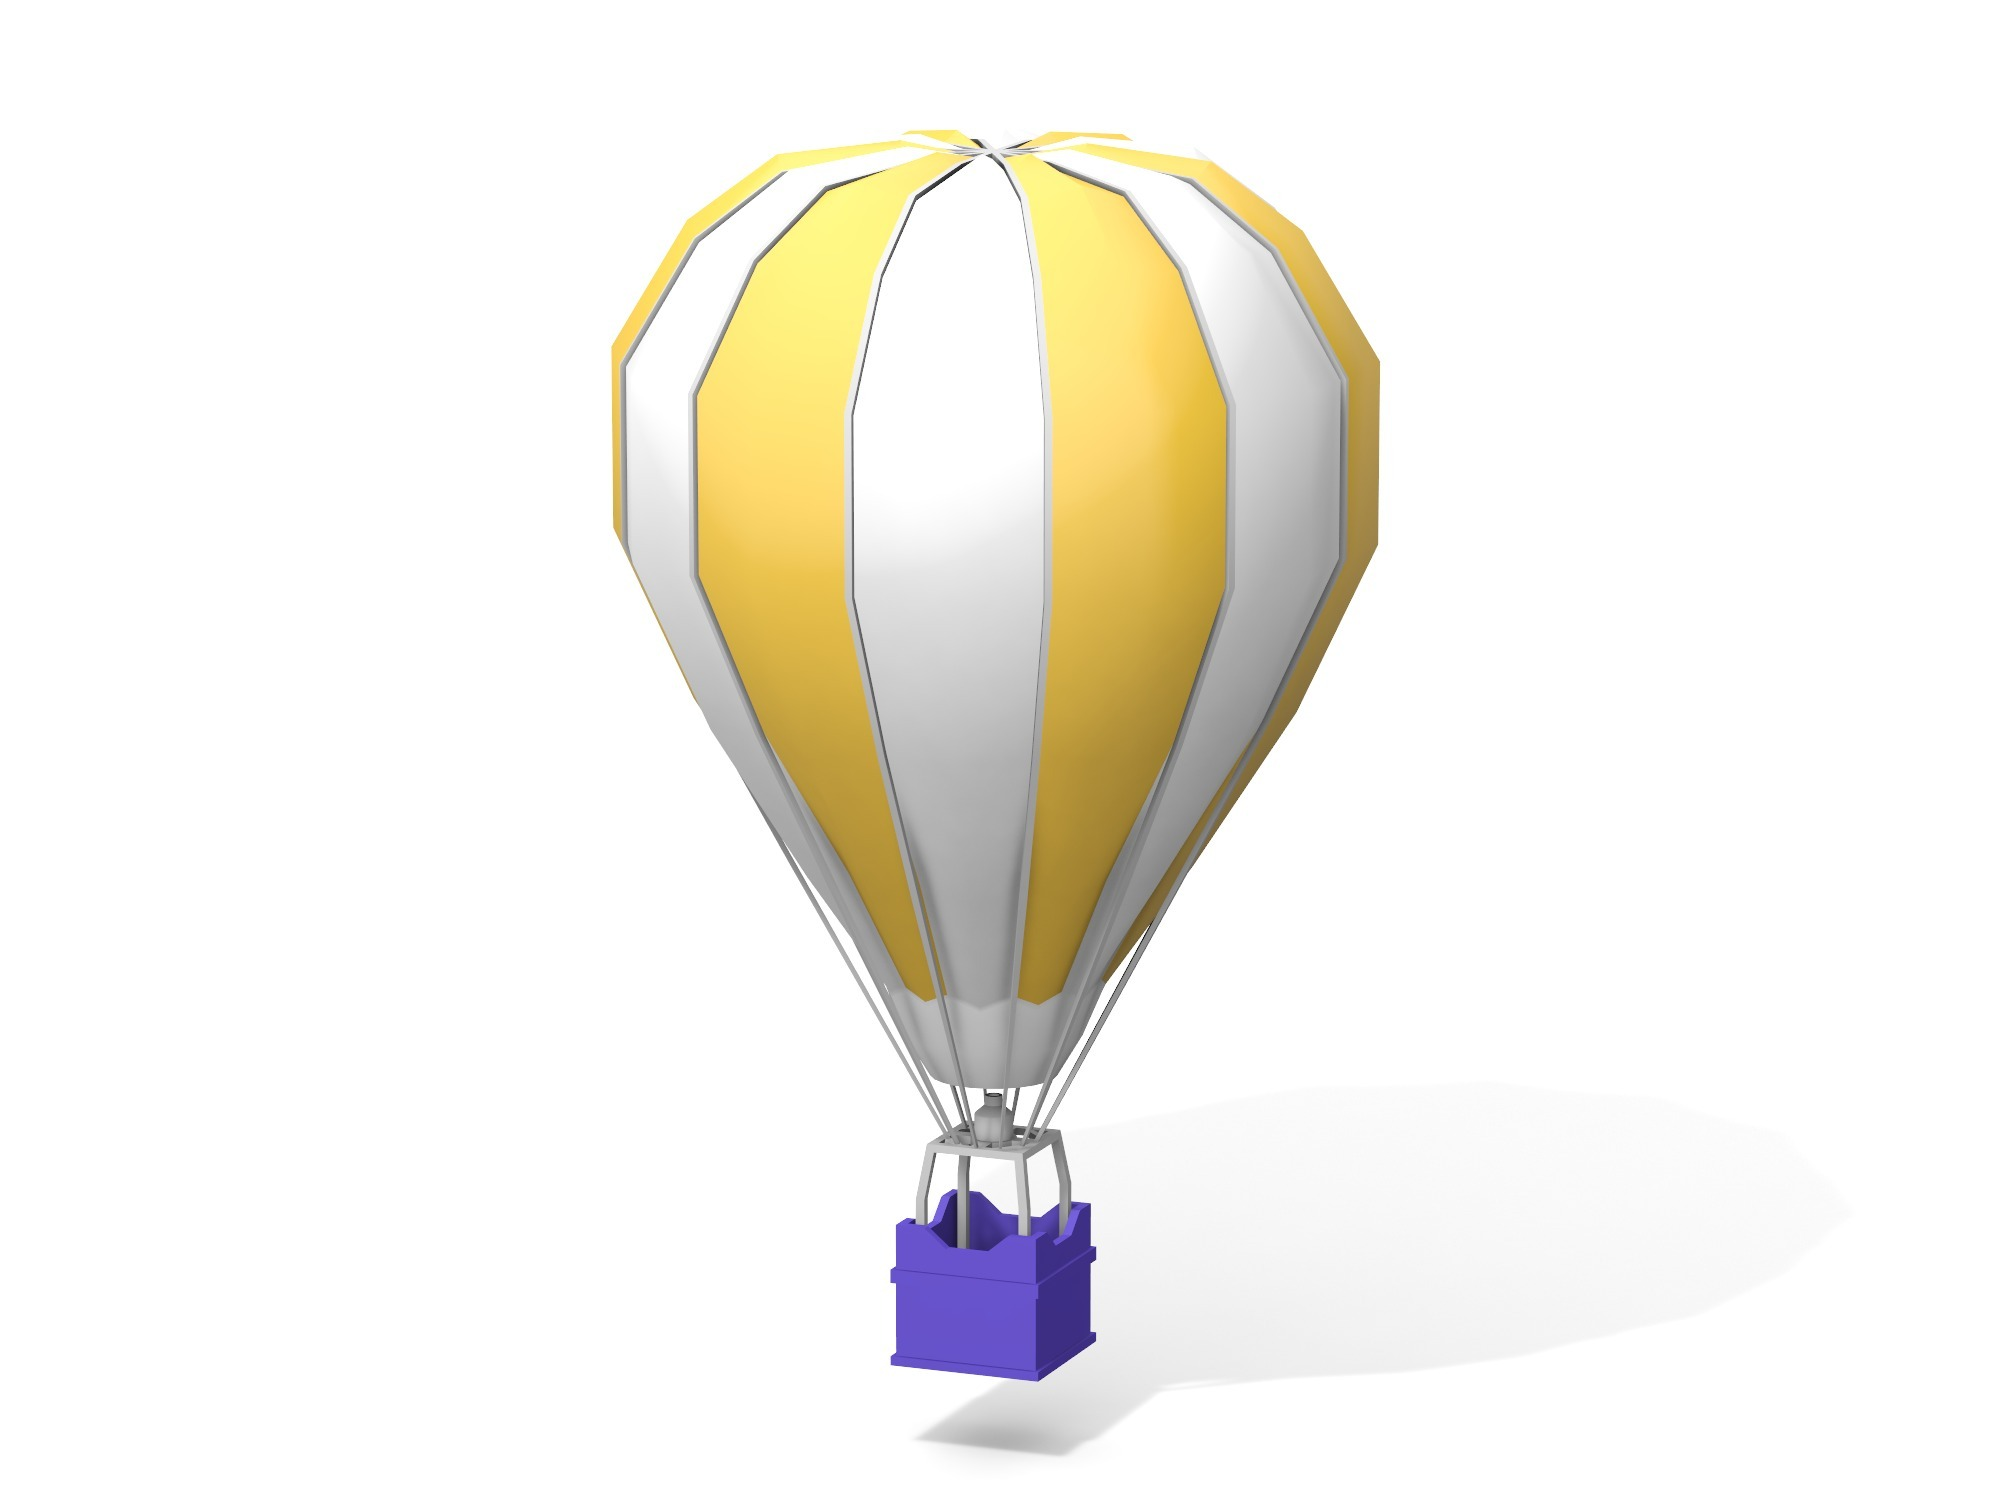 Hot air balloon - 3D design by Vectary assets Nov 5, 2018